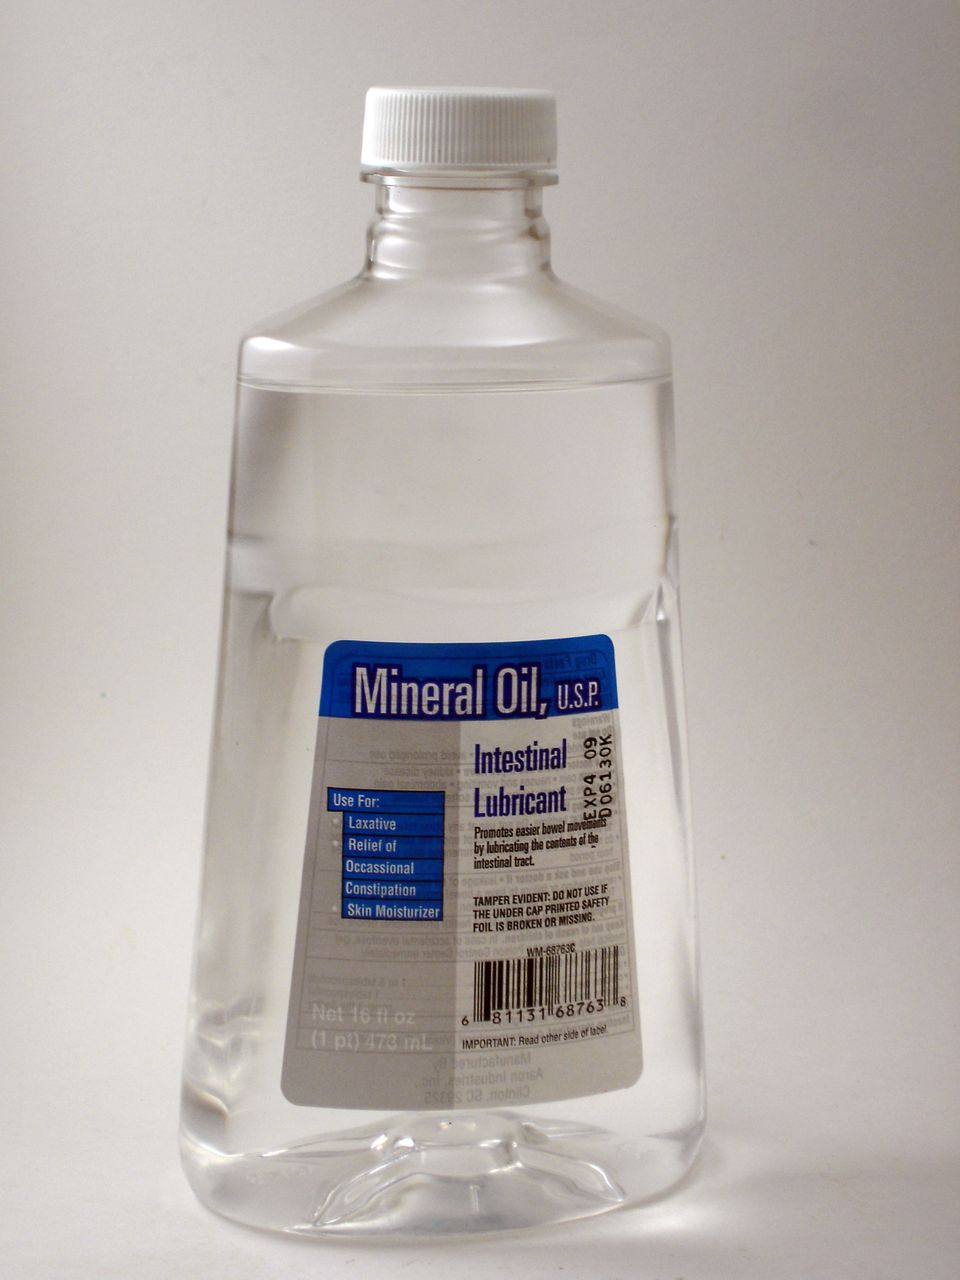 Bottle of mineral oil